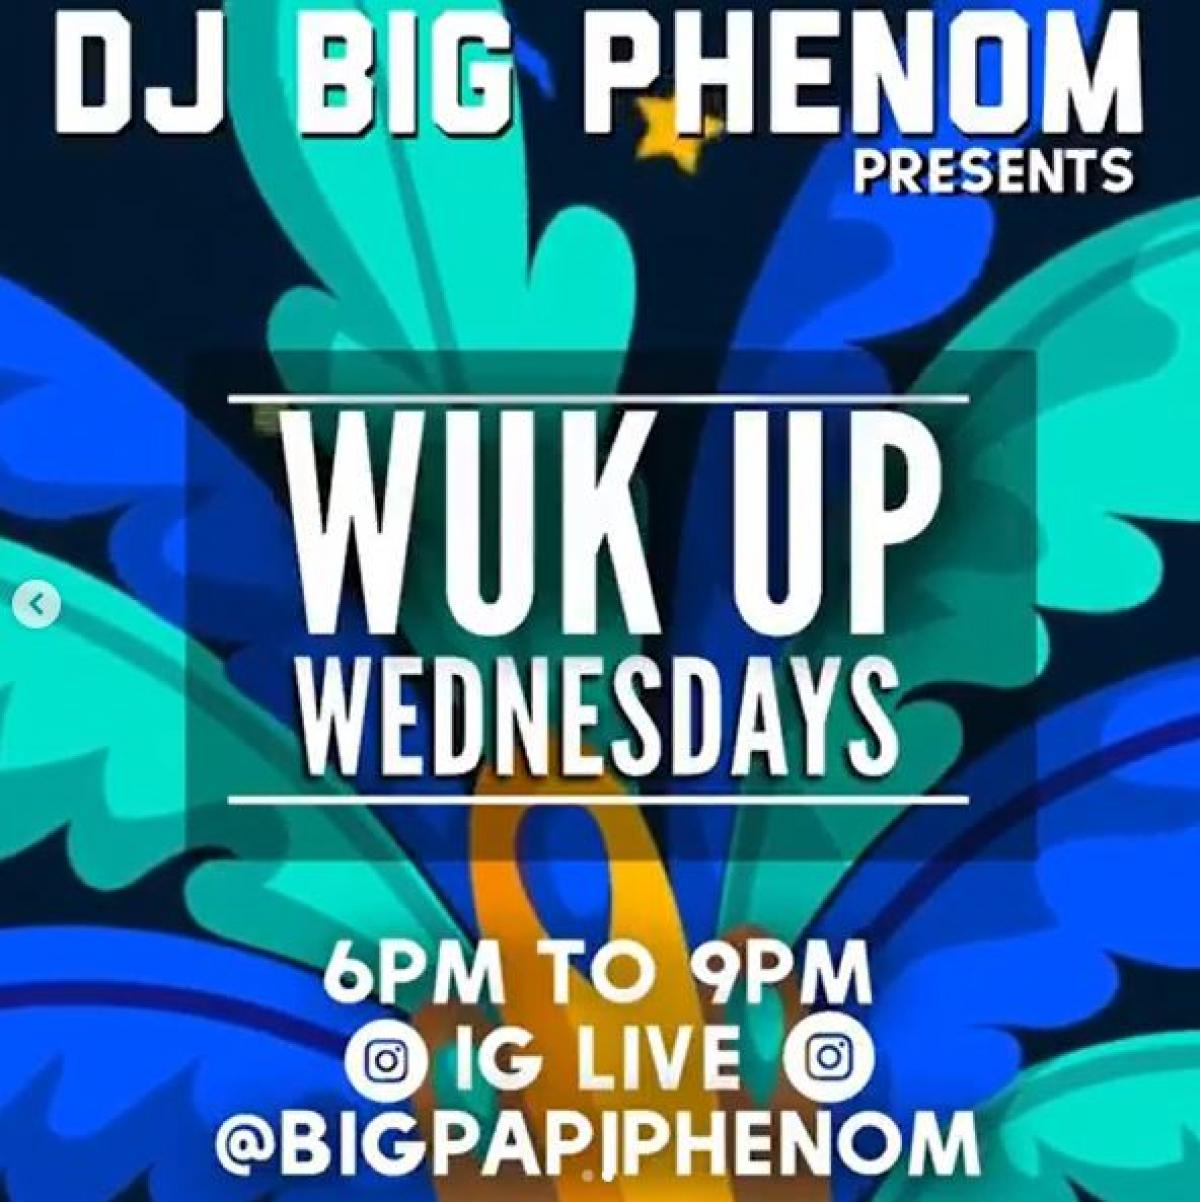 Wuk Up Wednesday flyer or graphic.